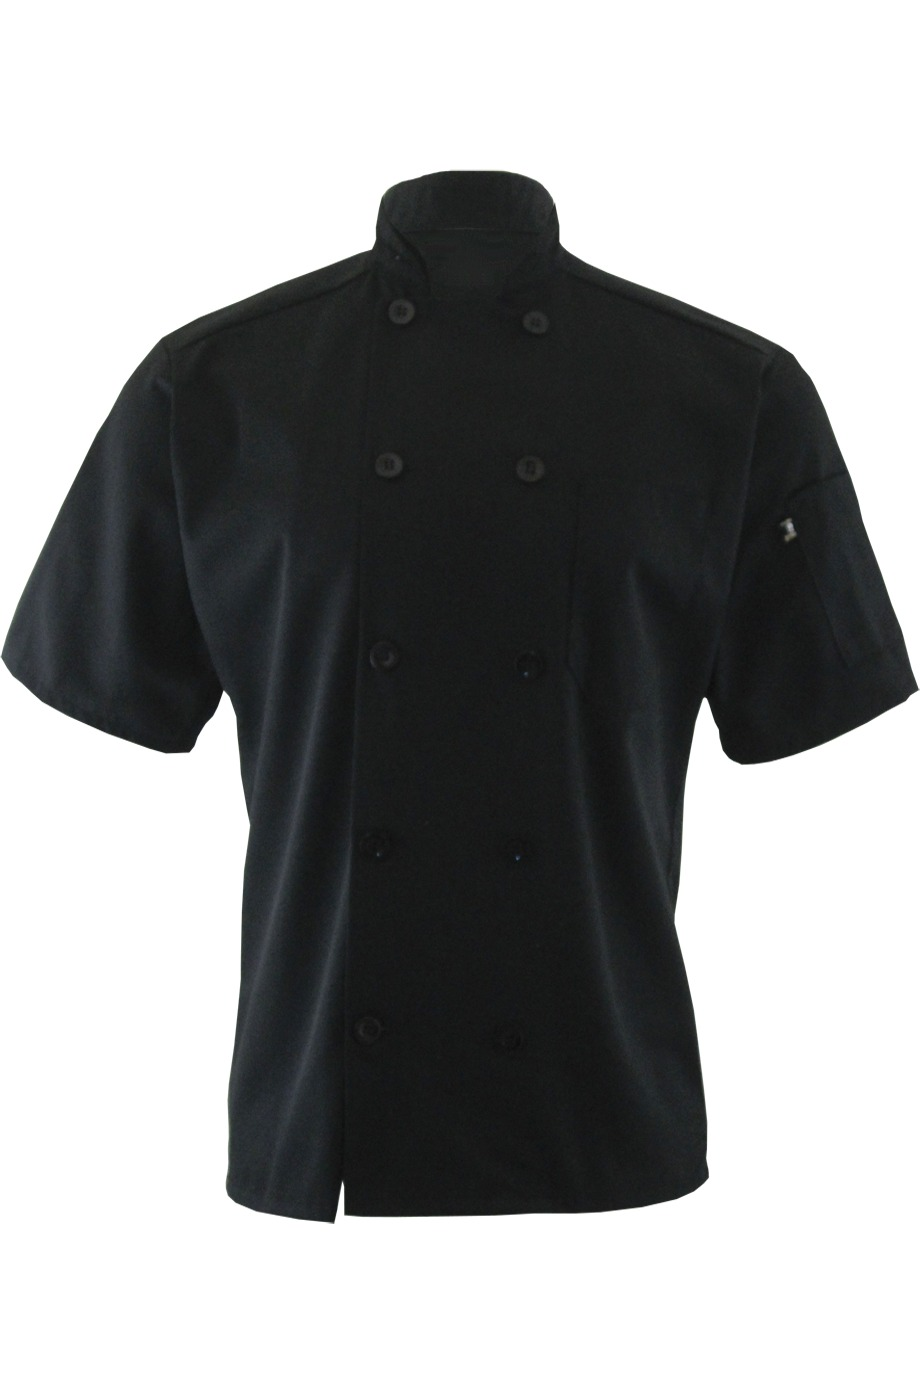 Edwards Garment 3306 - Casual 10 Button Short Sleeve Chef Coat